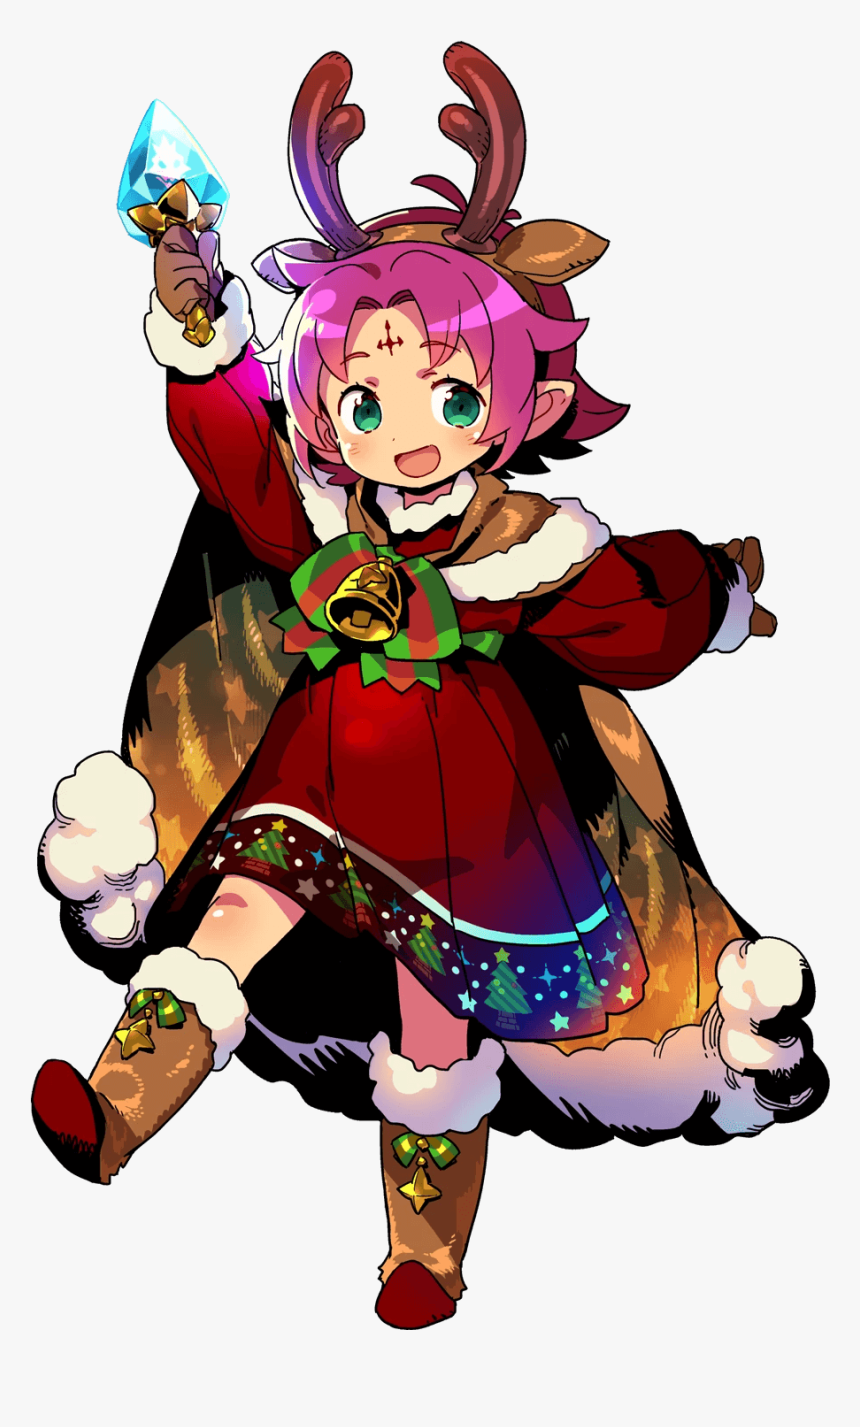 Fire Emblem Heroes Fae, HD Png Download, Free Download